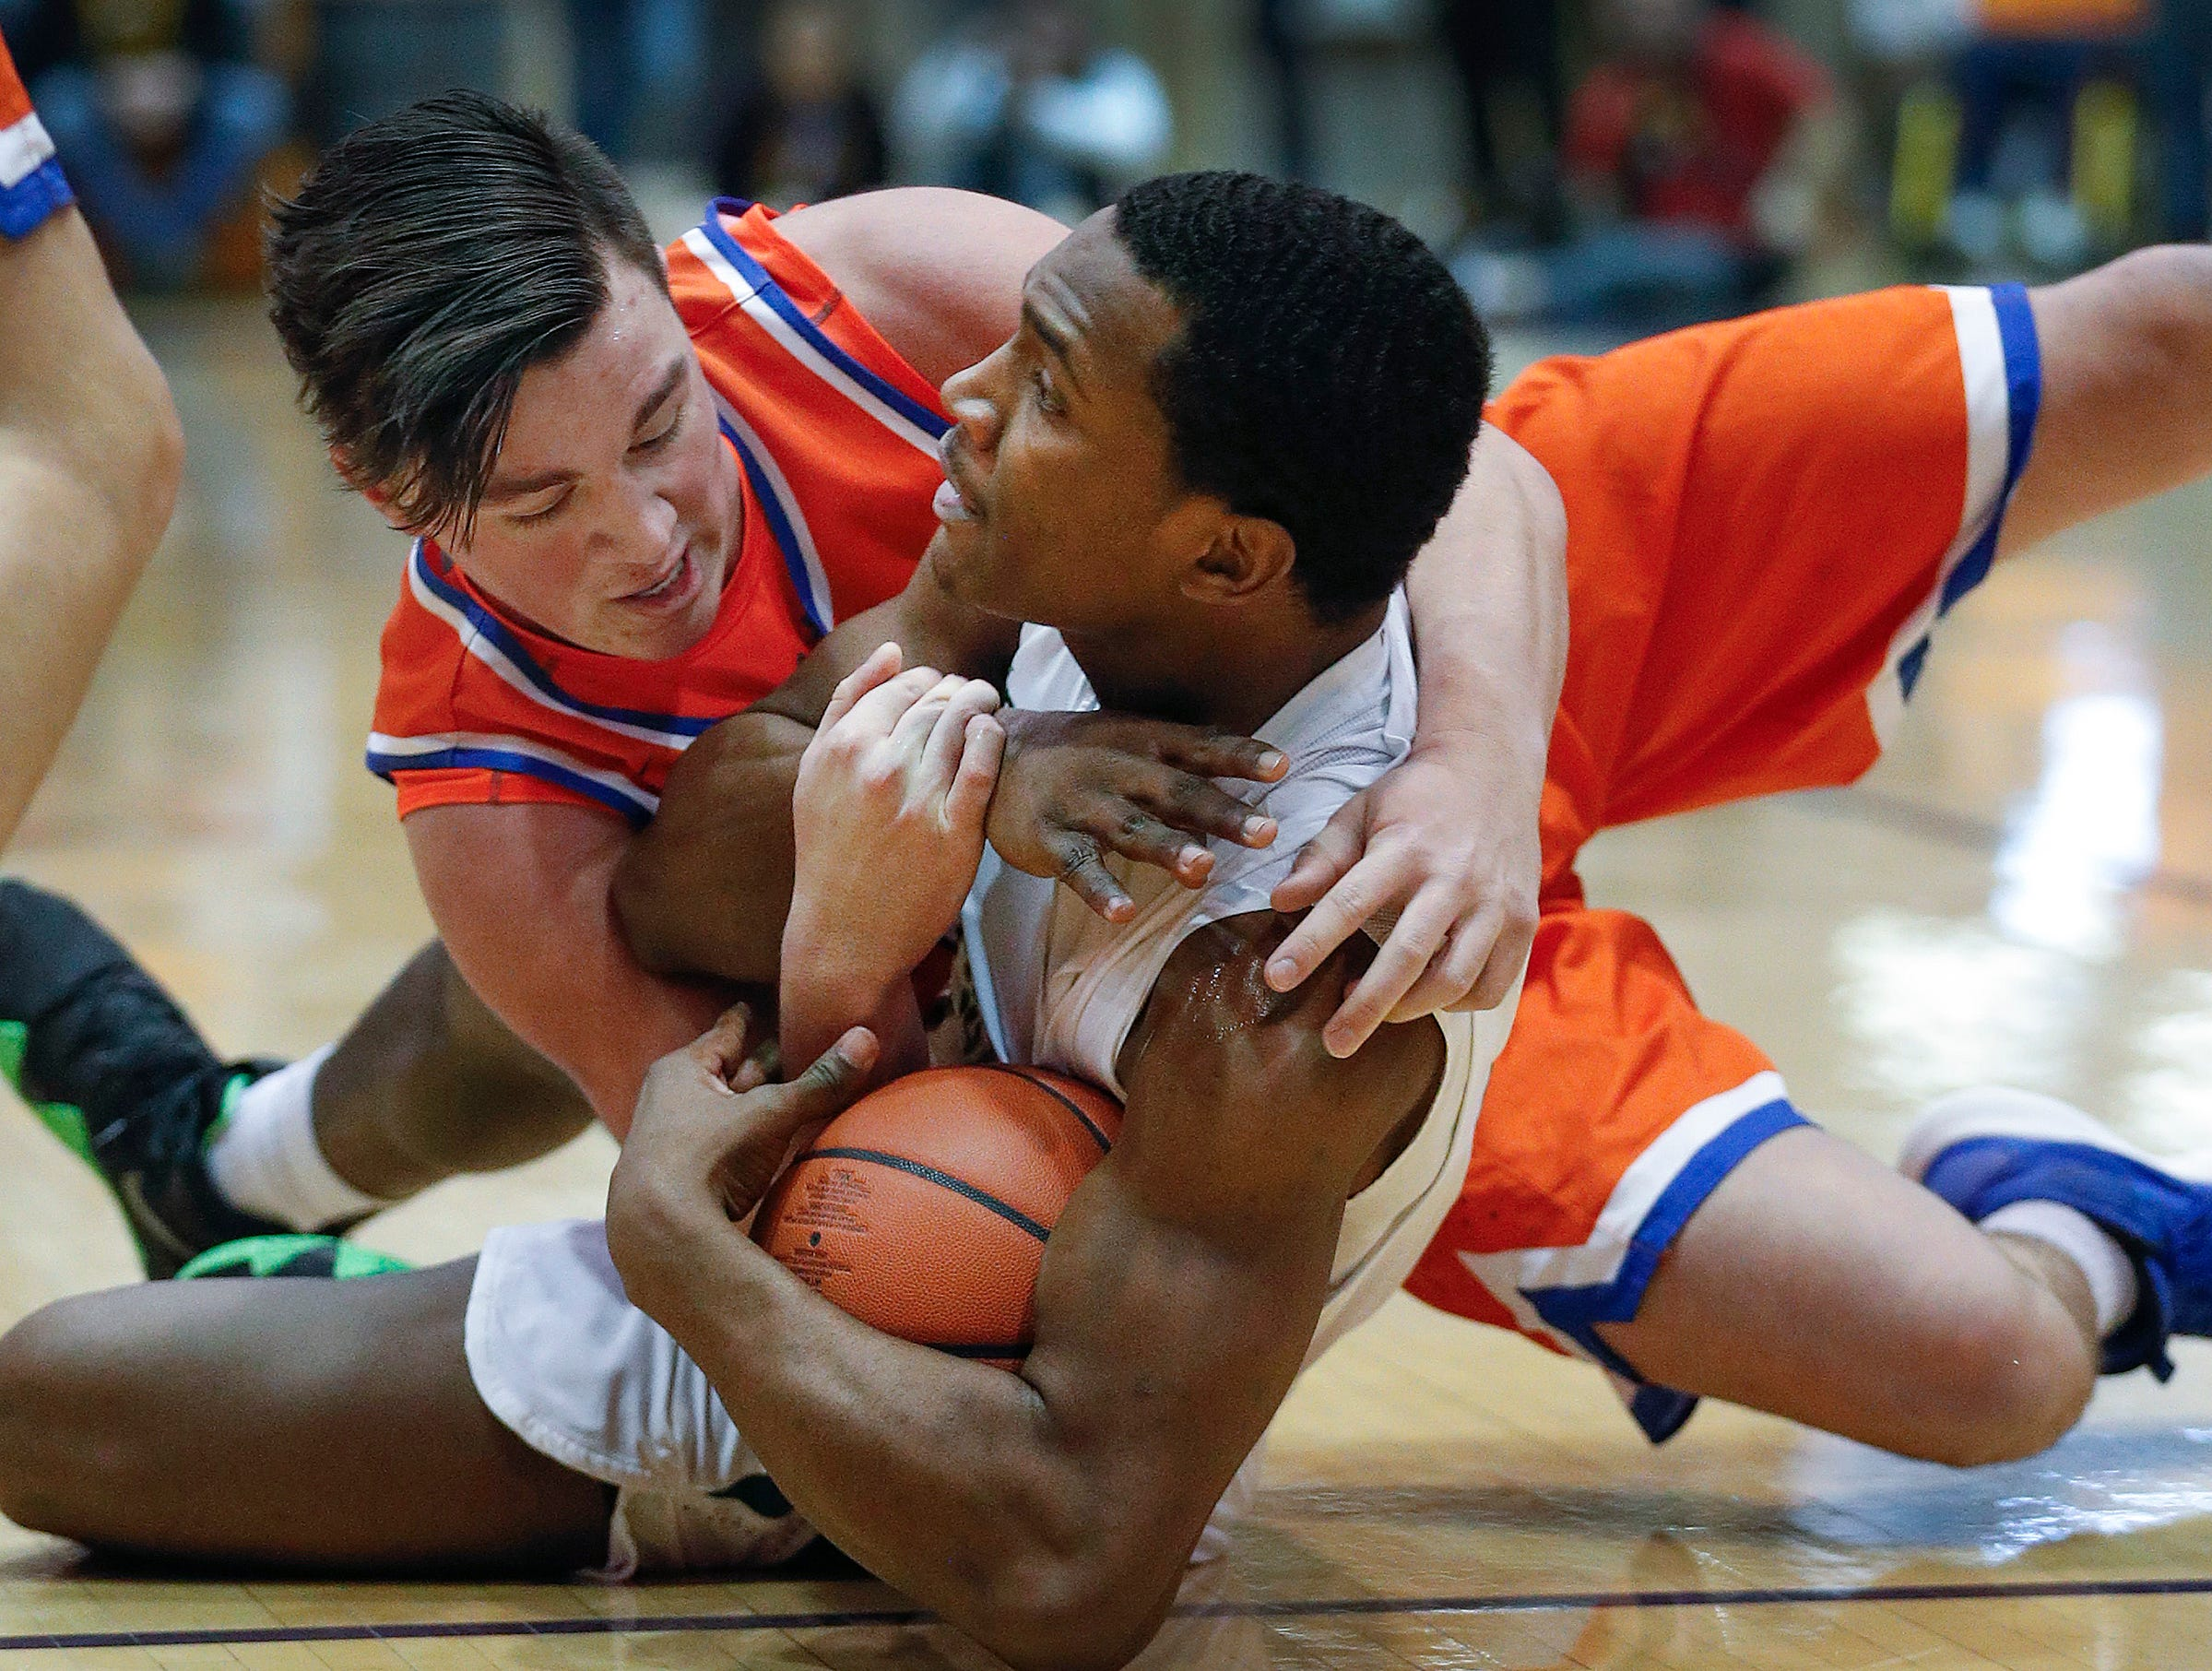 Crispus Attucks Tigers Jayon Barnett (12) and Silver Creek Dragons Joshua Landers (20)  scramble for a loose ball in the first half of their IHSAA boys' Semi-State basketball game at Seymour High School gym in Seymour IN, on Saturday, Mar. 16, 2019.